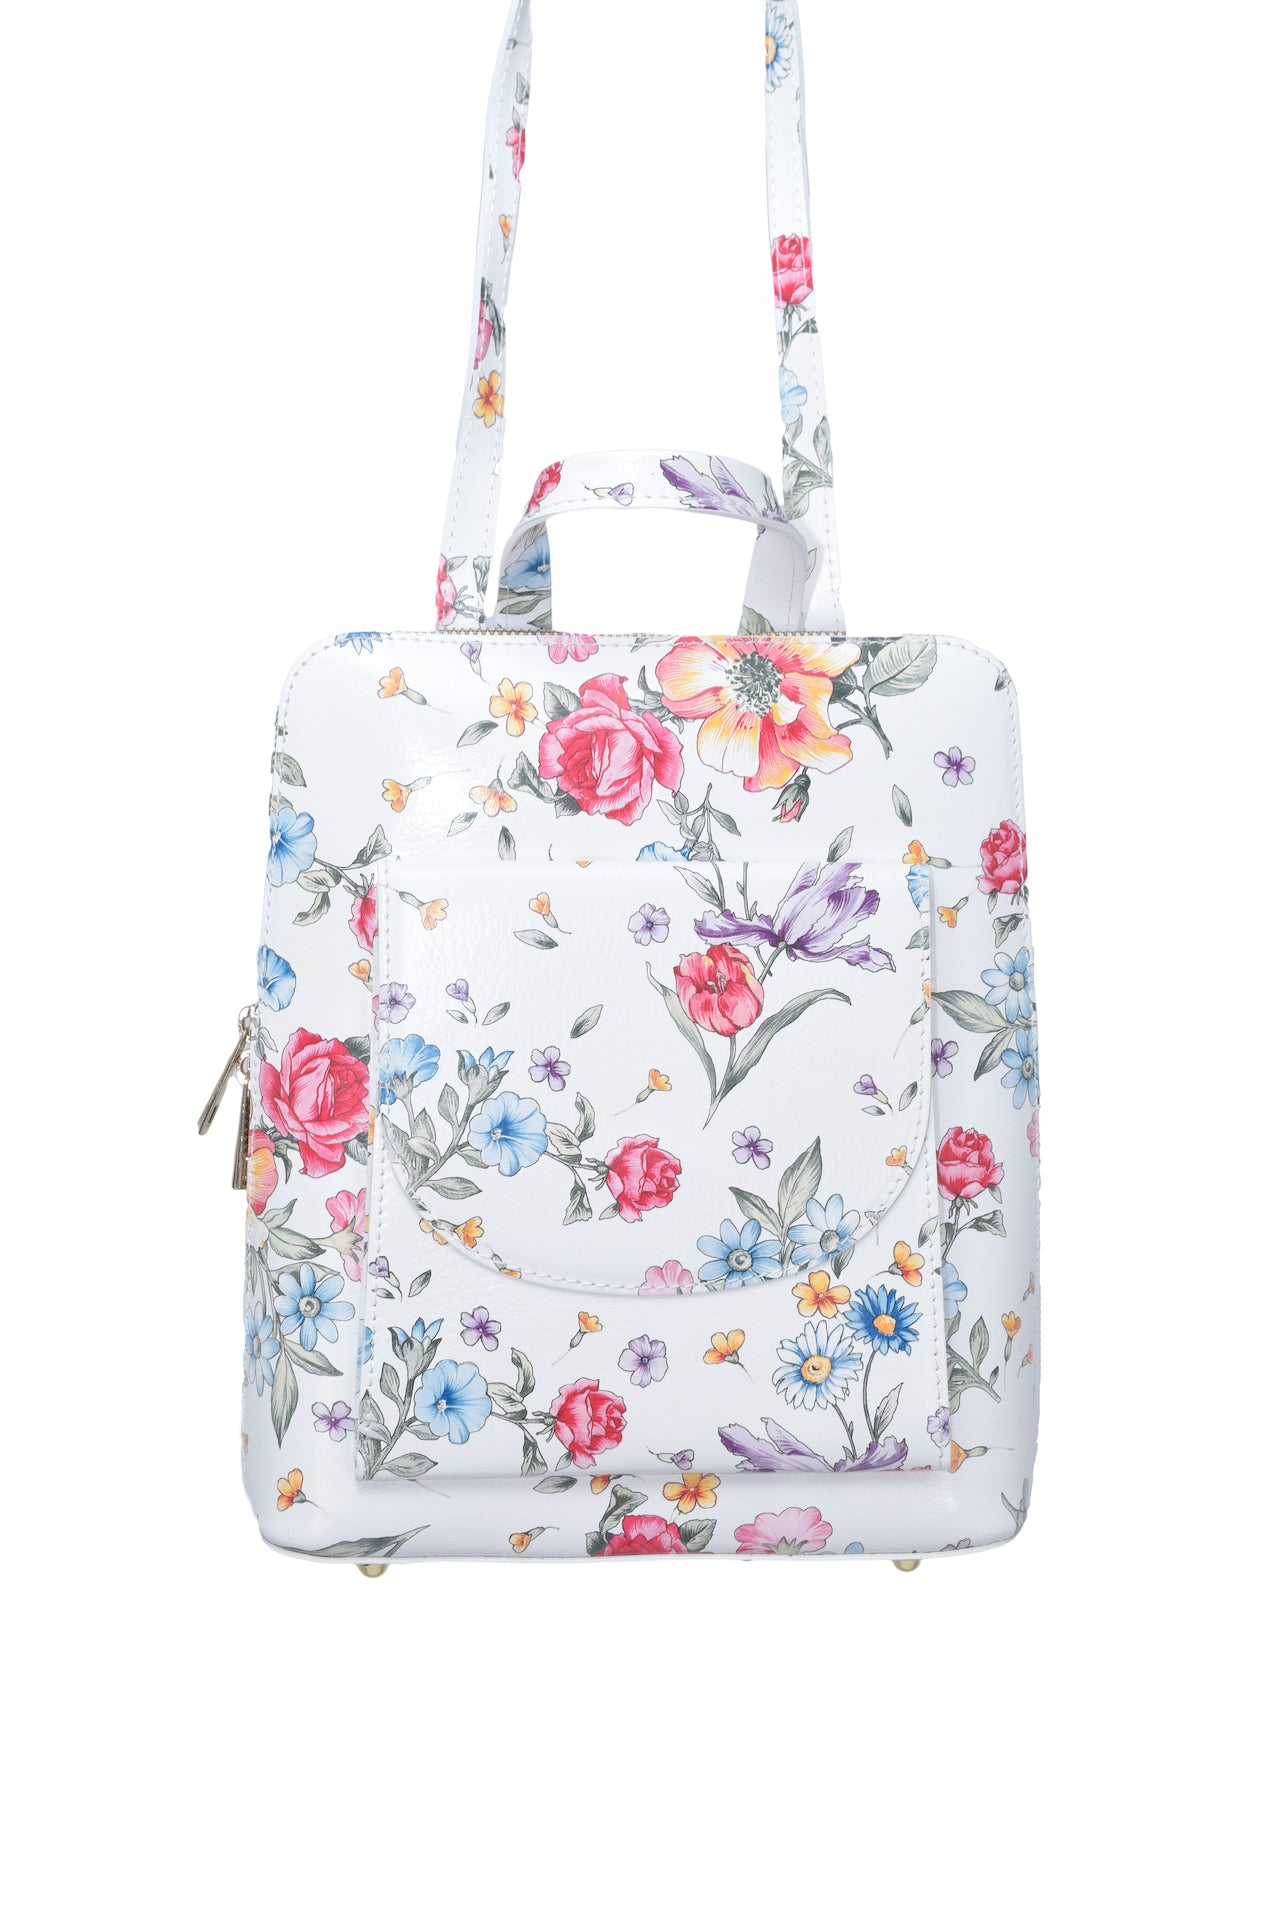 Floral 3 in 1 - backpack / rucksack, cross body bag, and hand bag in one.